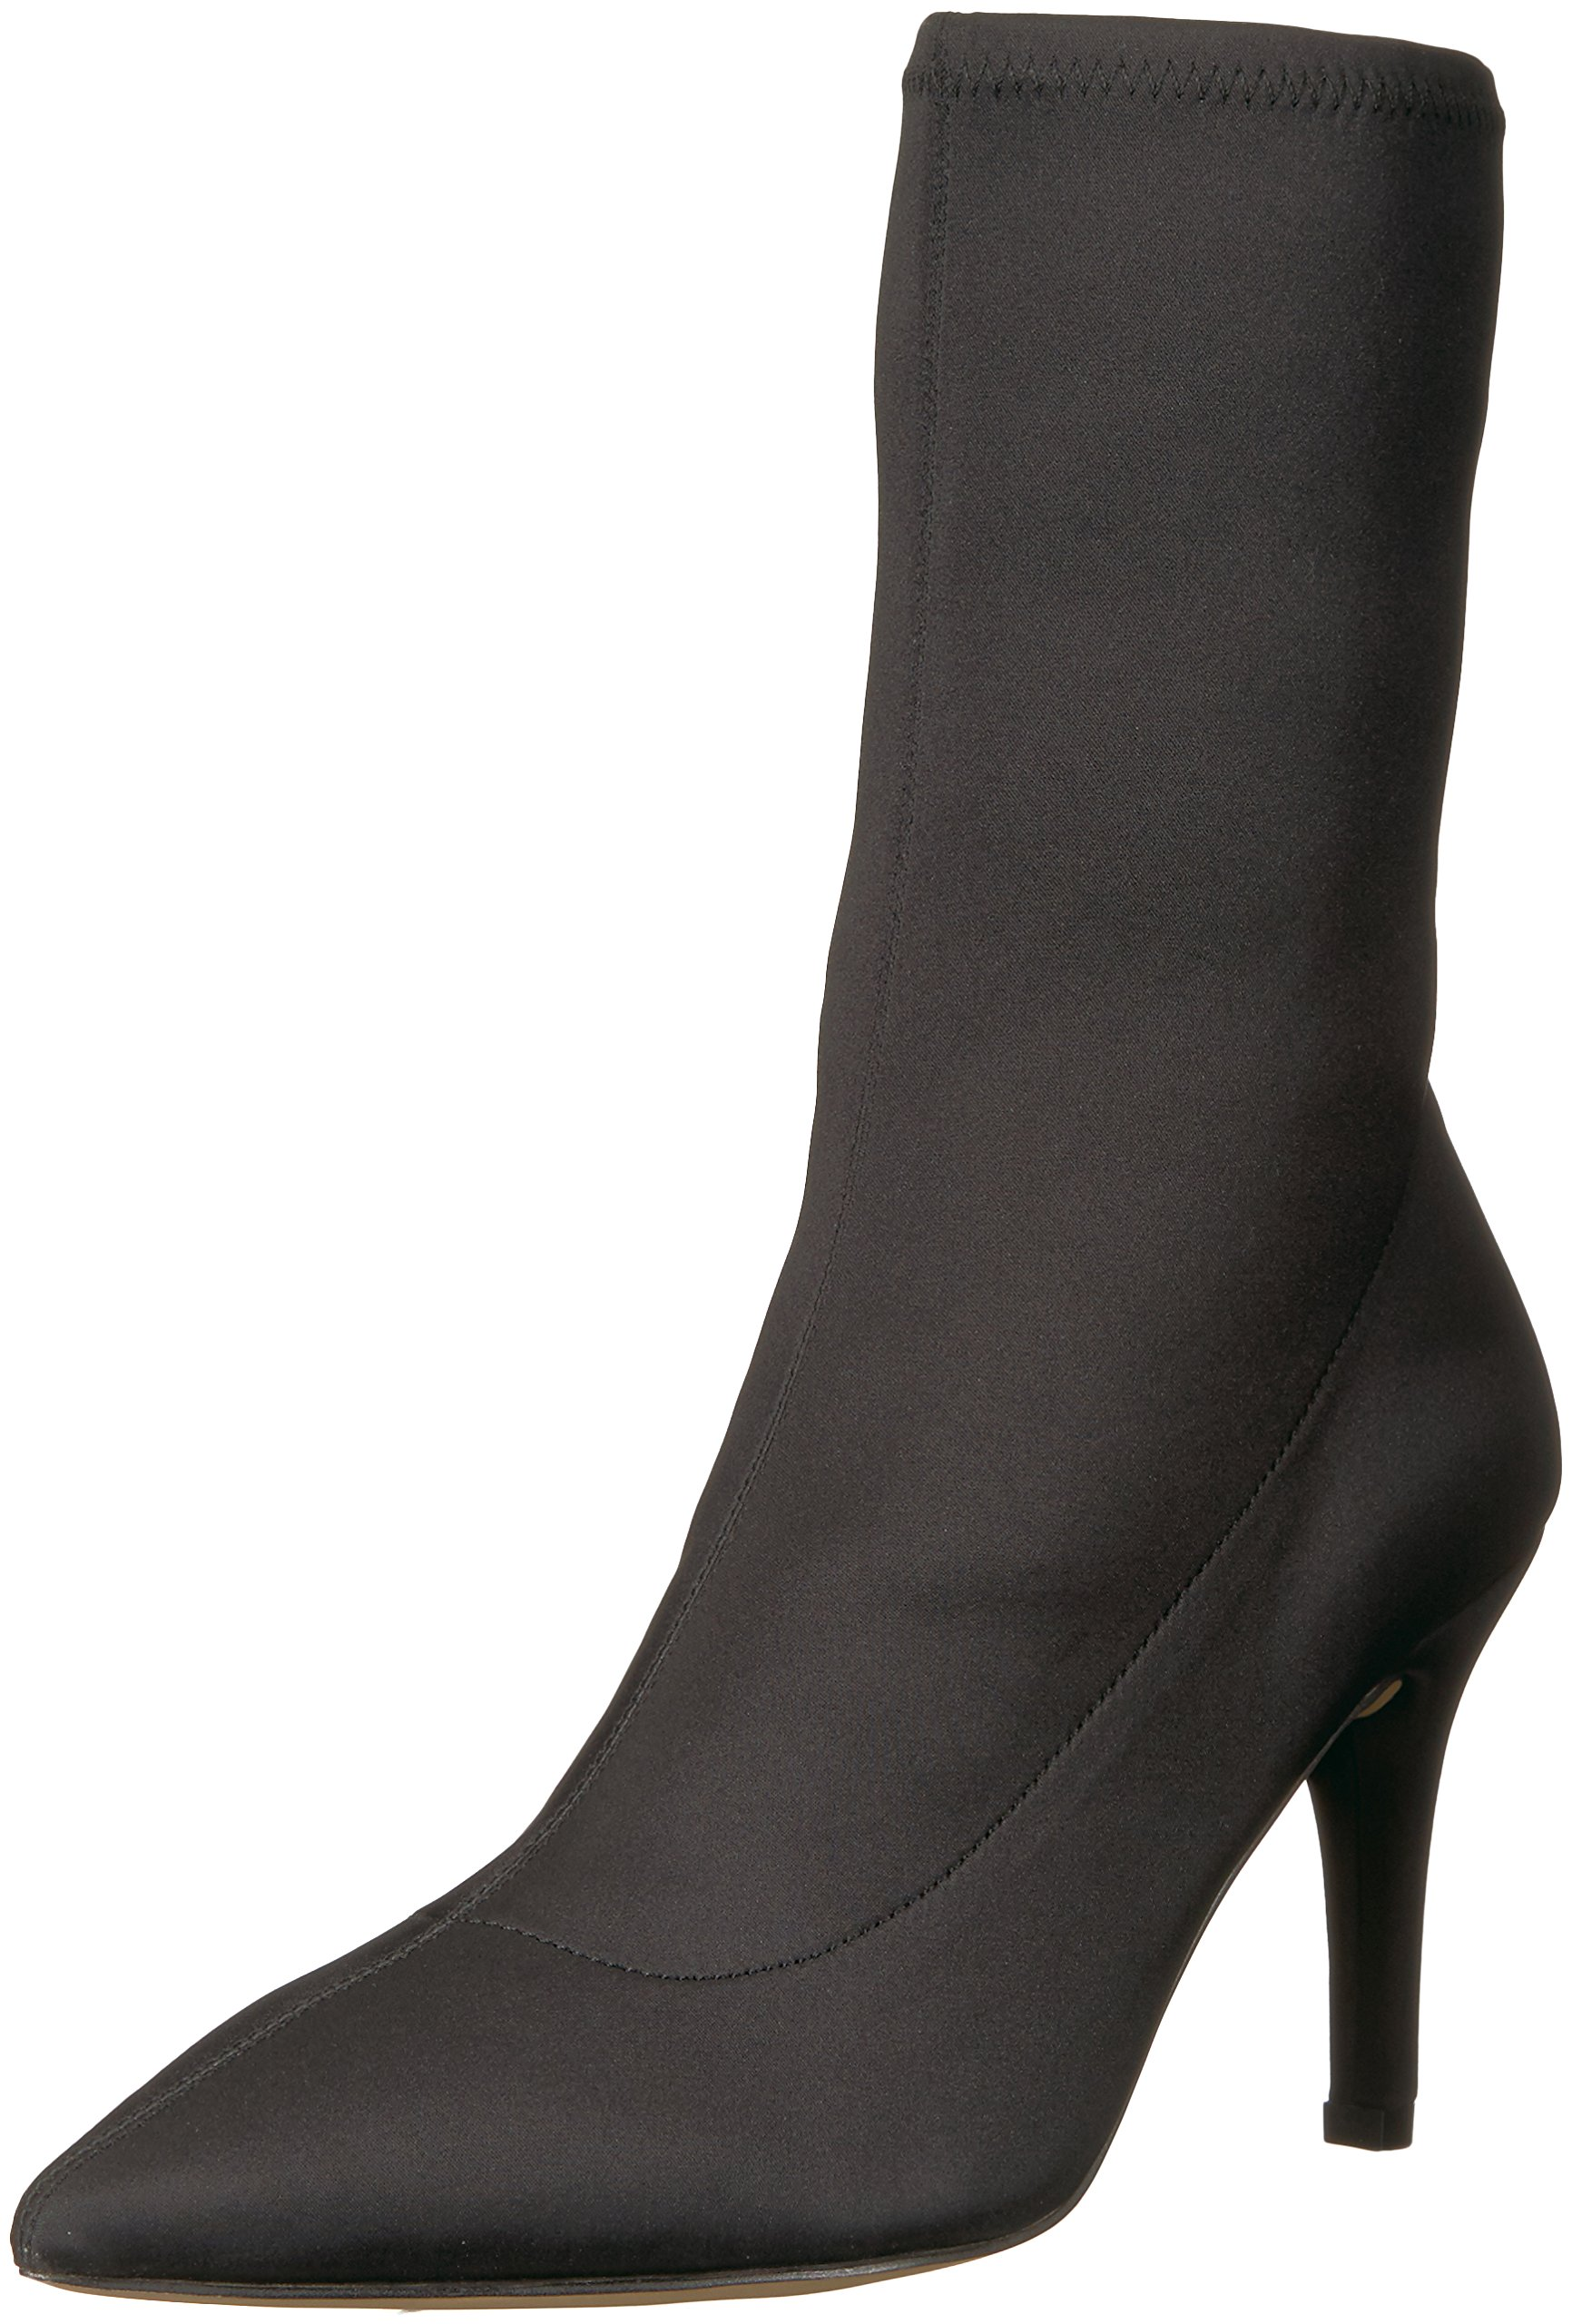 The Fix Women's Becca Pointed Toe Sock-Style Ankle Boot, Black Stretch Satin, 9 B US